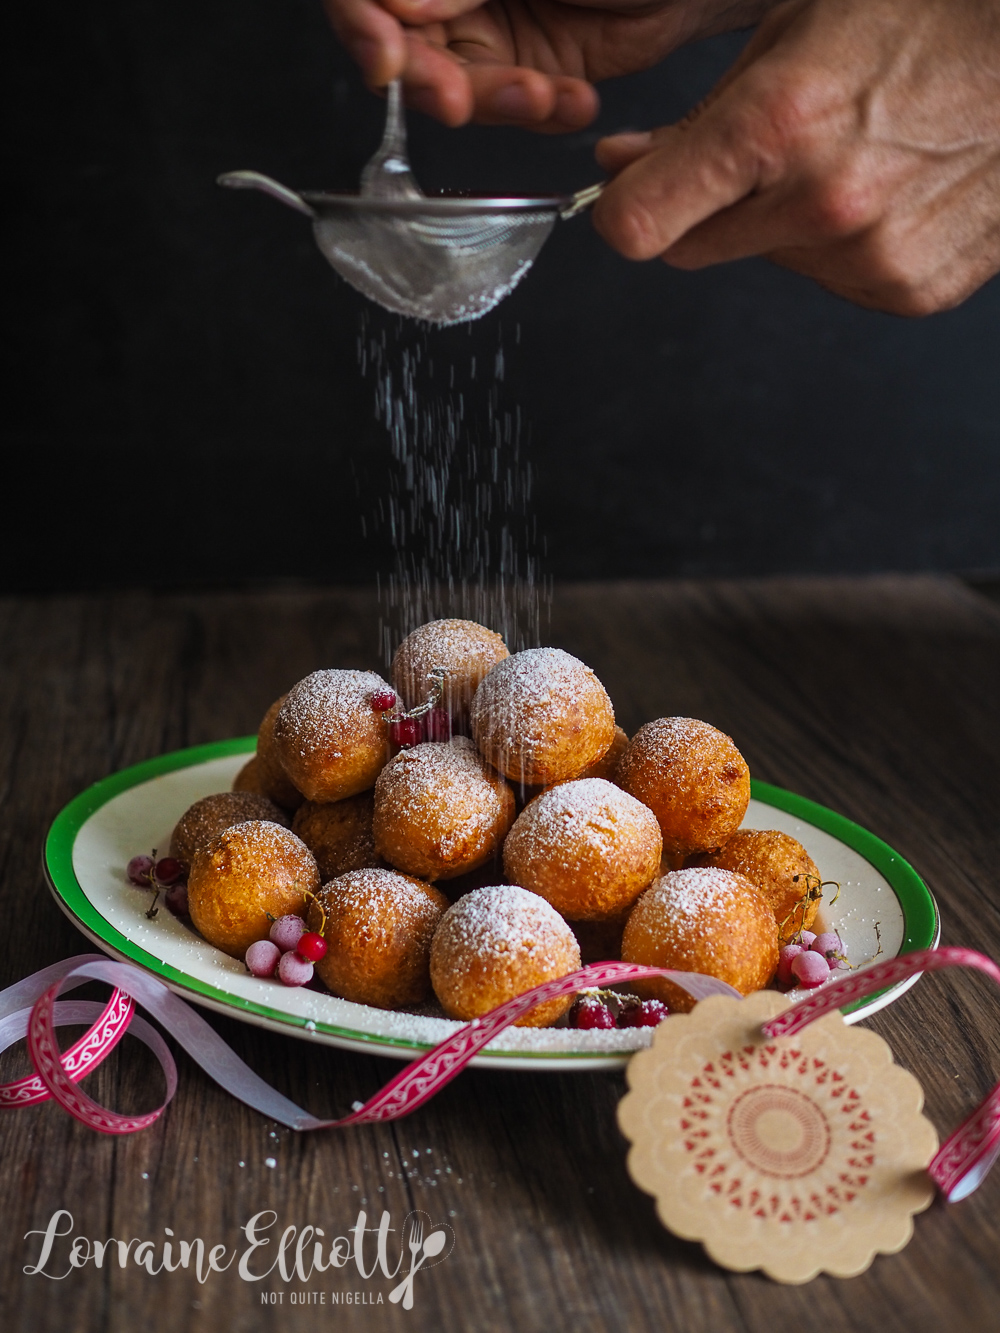 Thermomix Colombian Buñuelos Donuts